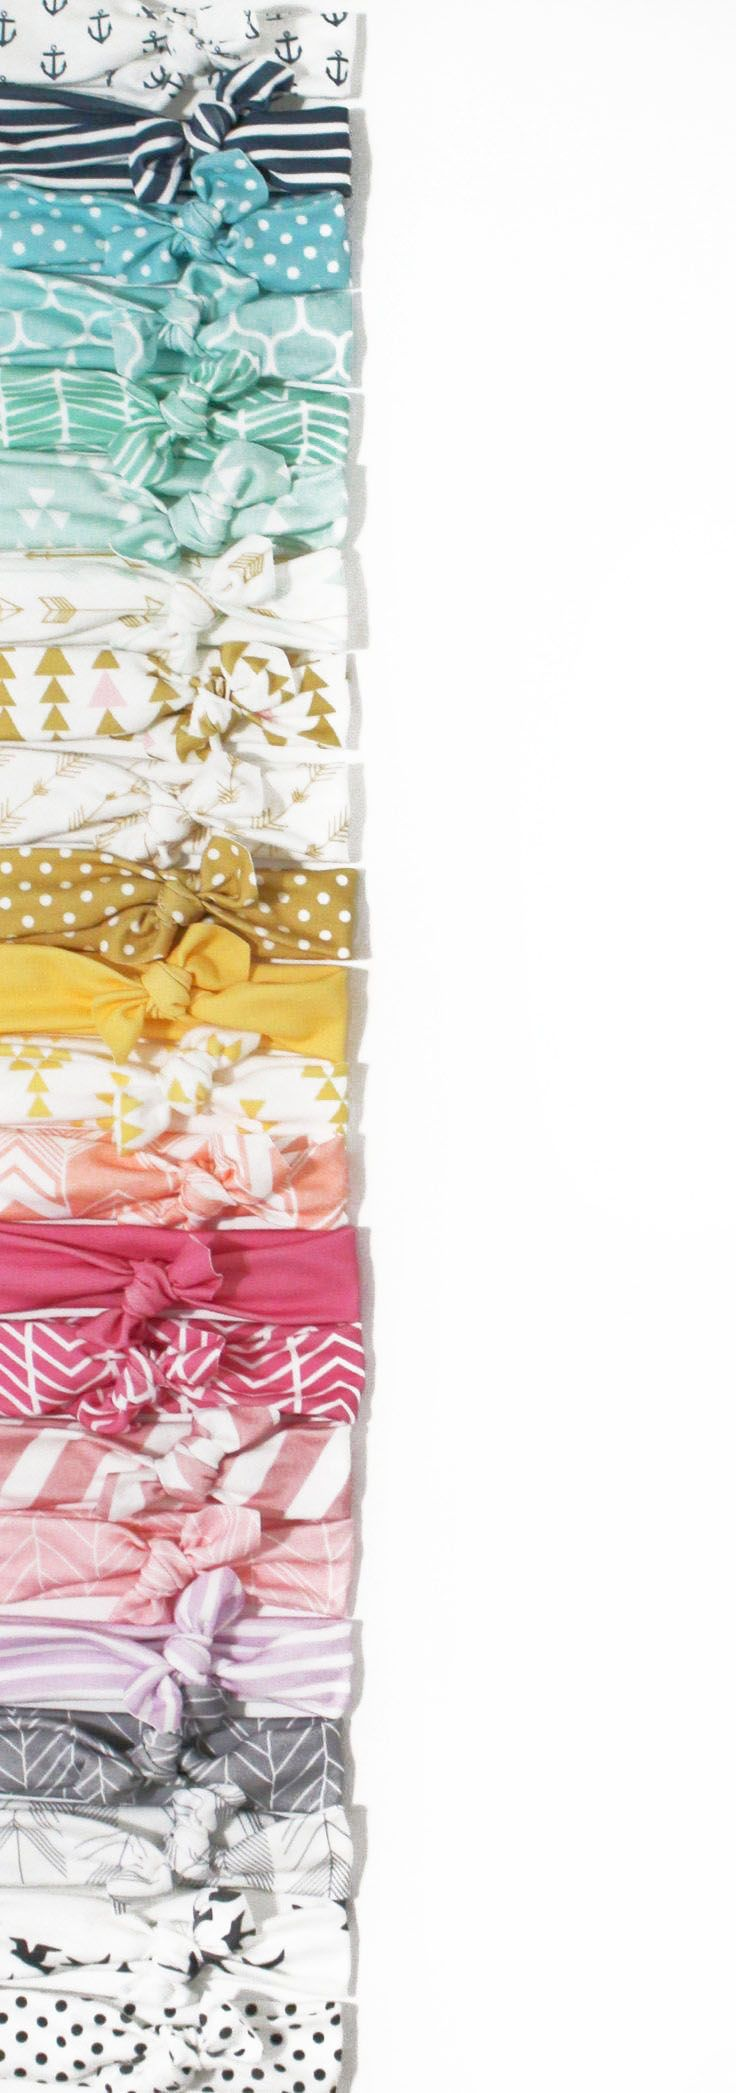 Macys baby hair accessories - Guaranteed To Be The Softest Headband She Will Ever Own Tons Of Colors Styles